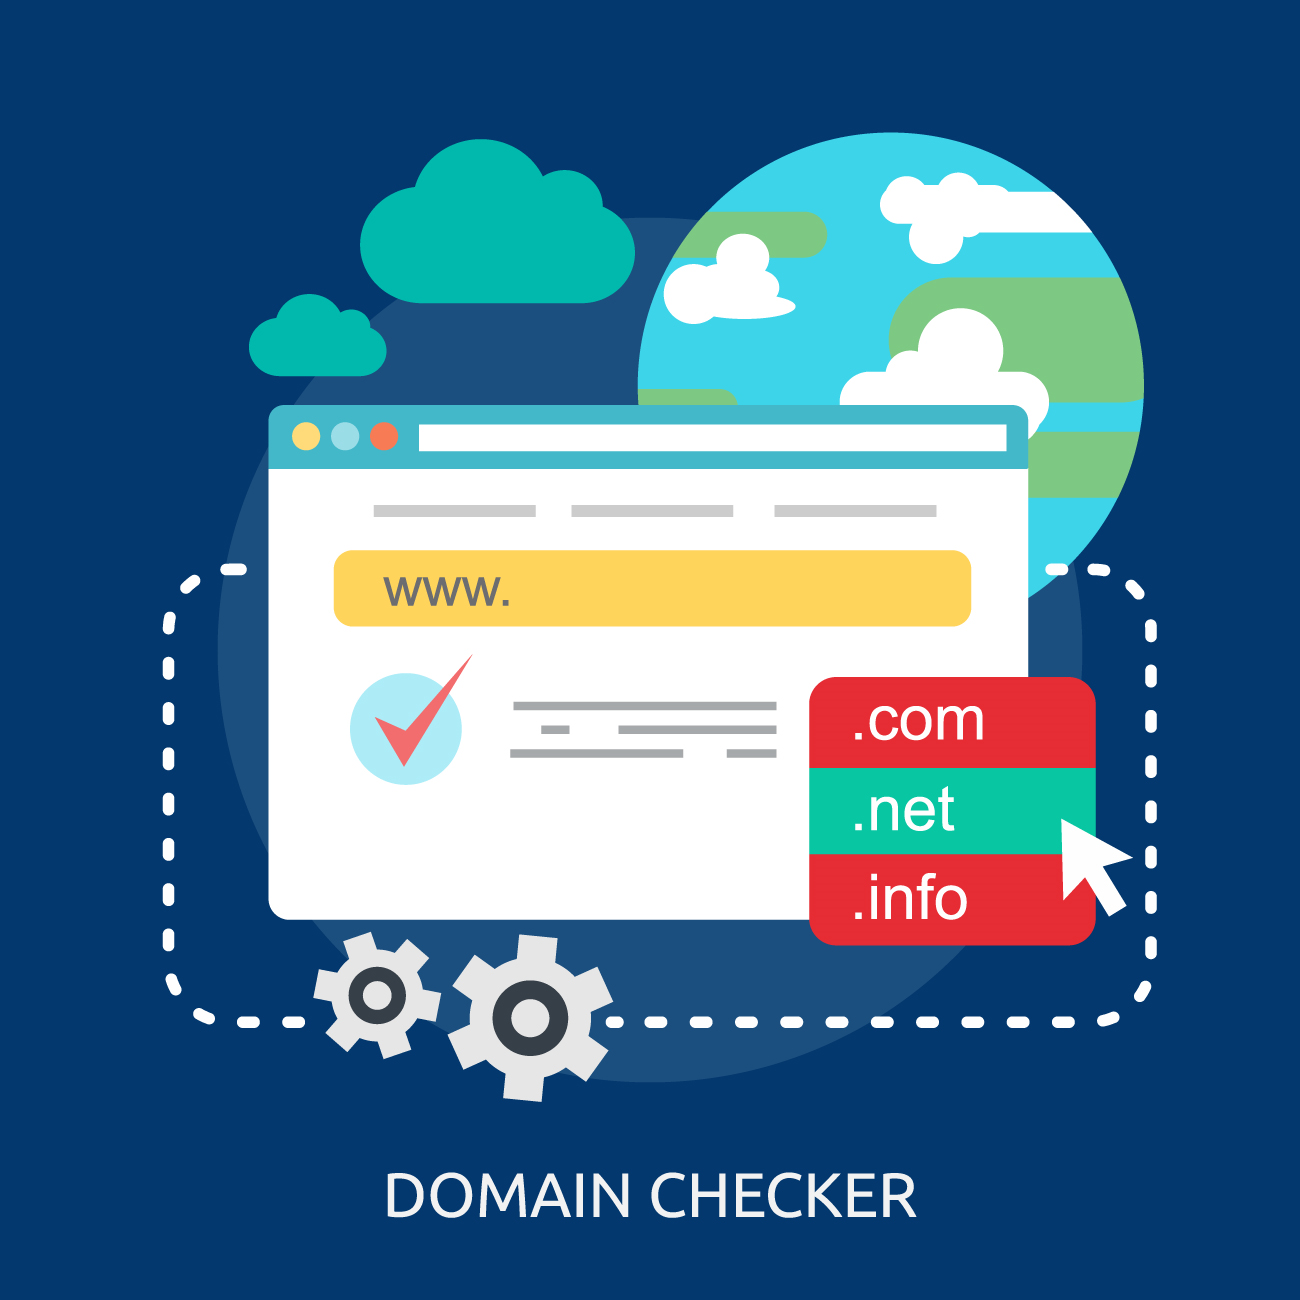 Domain checker лого